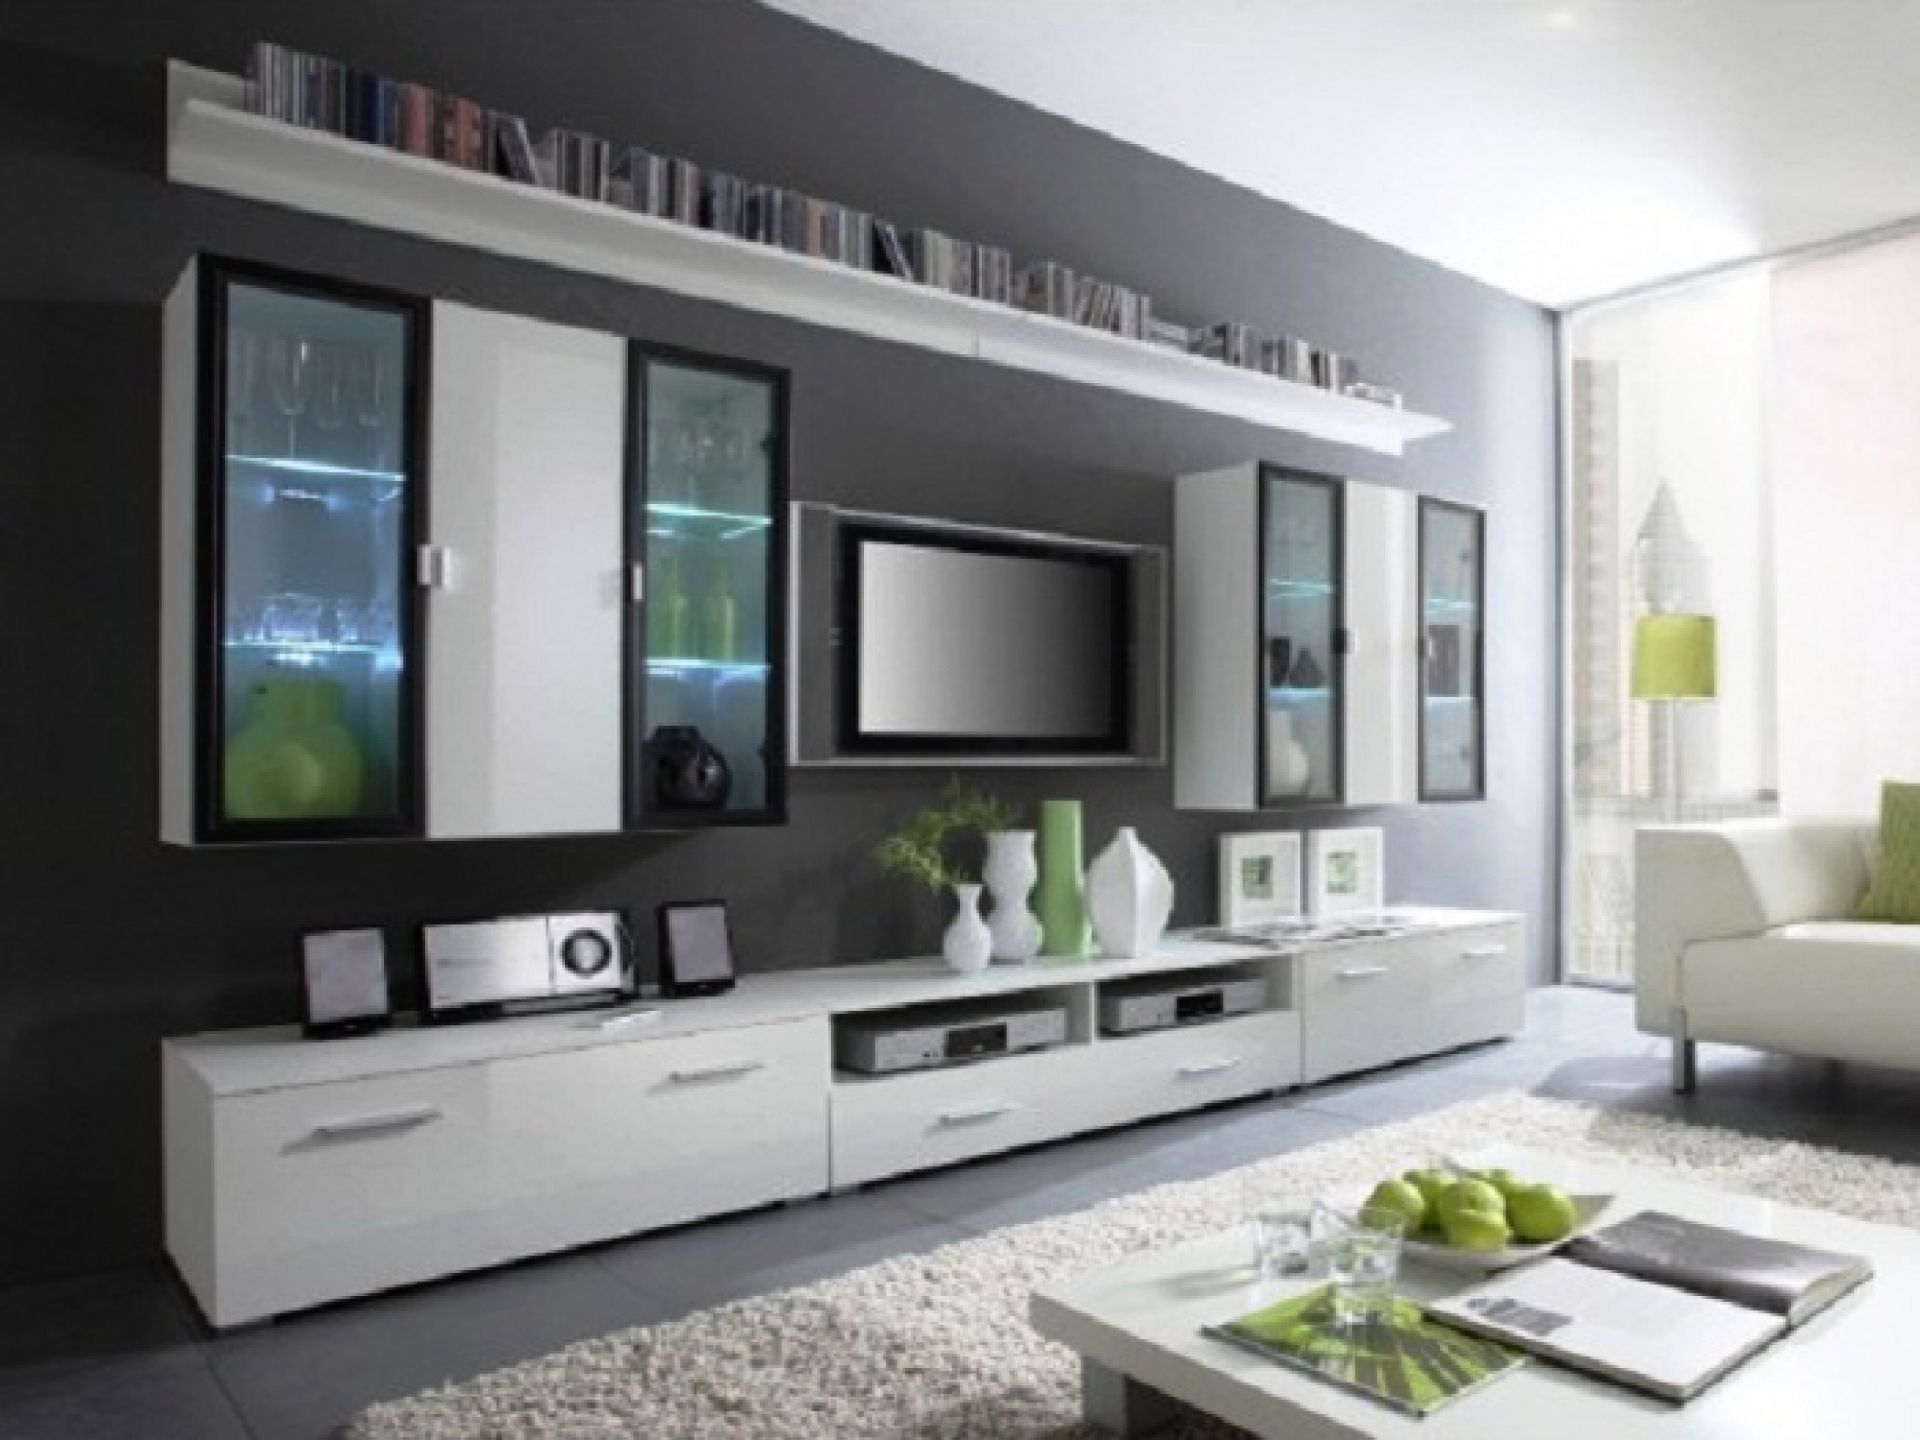 Living Room Living Room Tv Wall Ideas awesome bedroom wall design ideas and also tv 640 black living long floating shelves room on pinterest